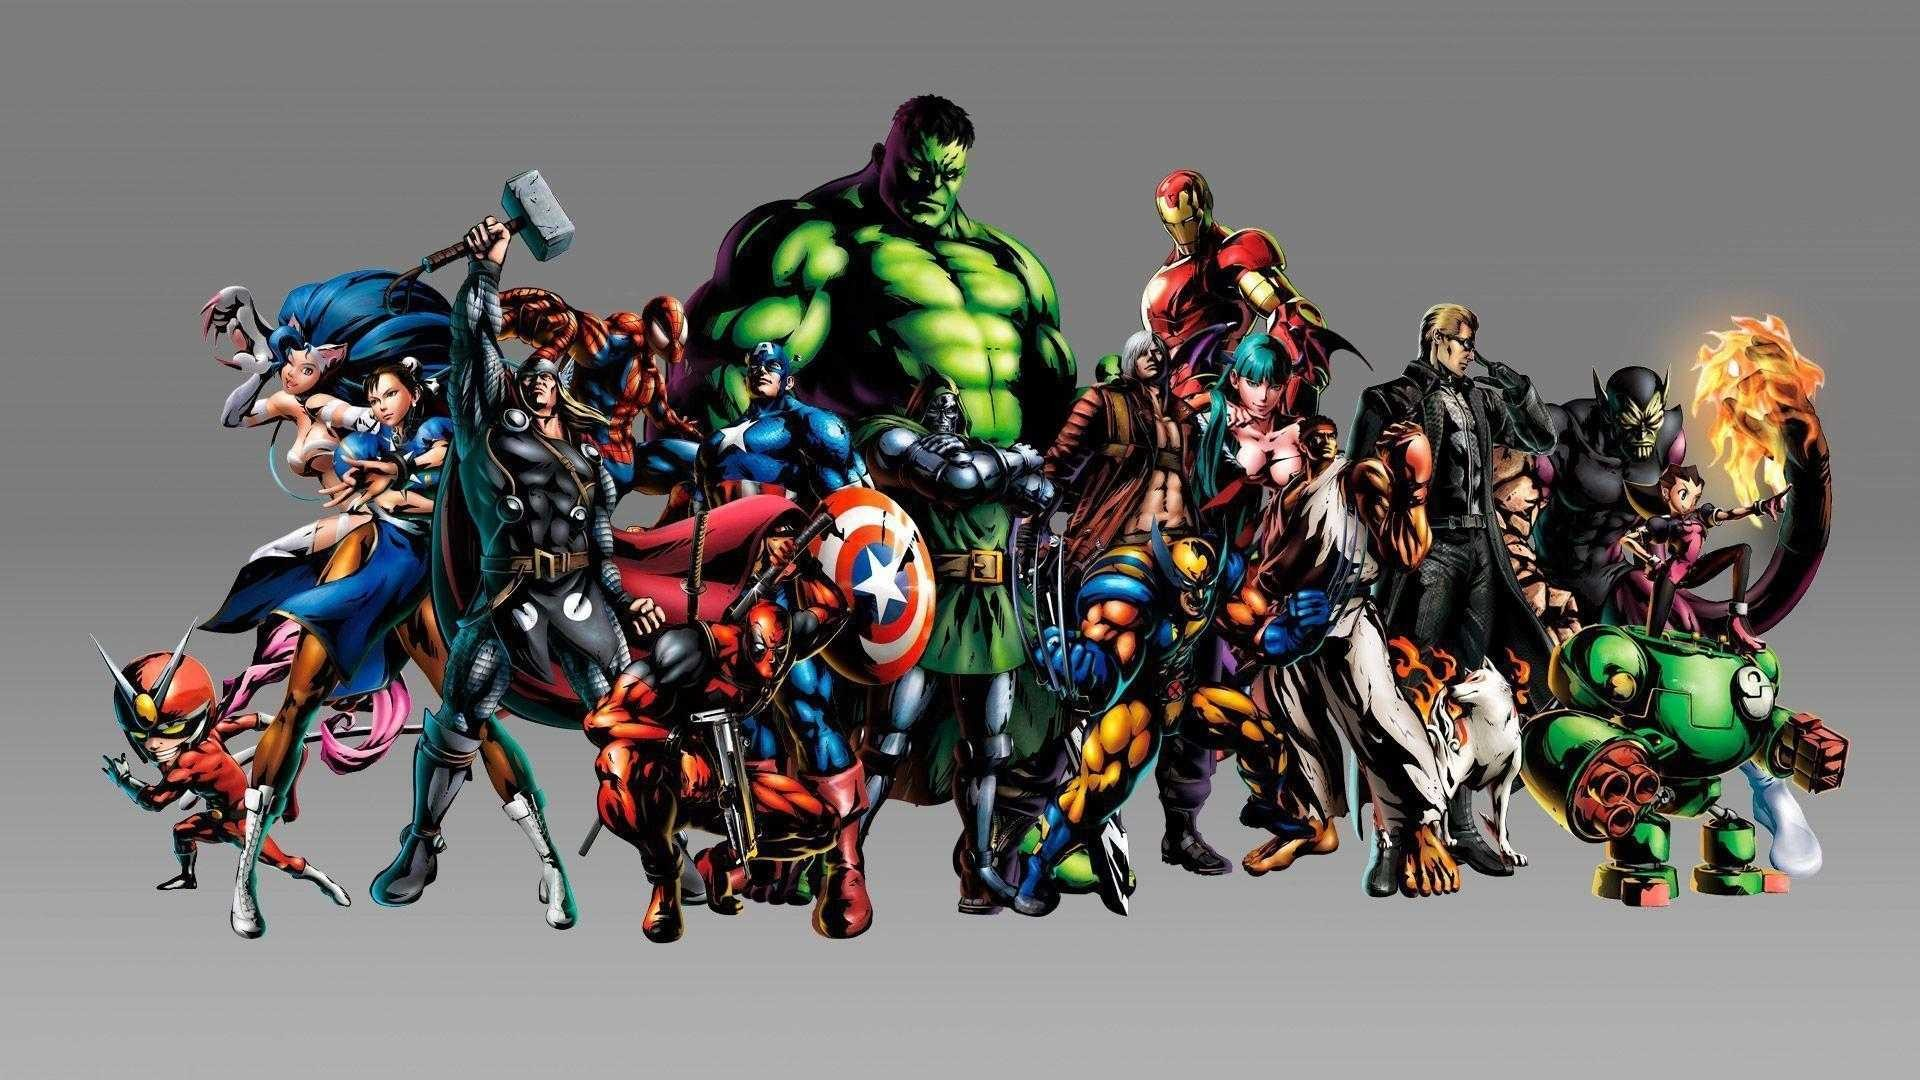 2560x1600 50 HD Wallpapers Of Comic Heroes And Villains